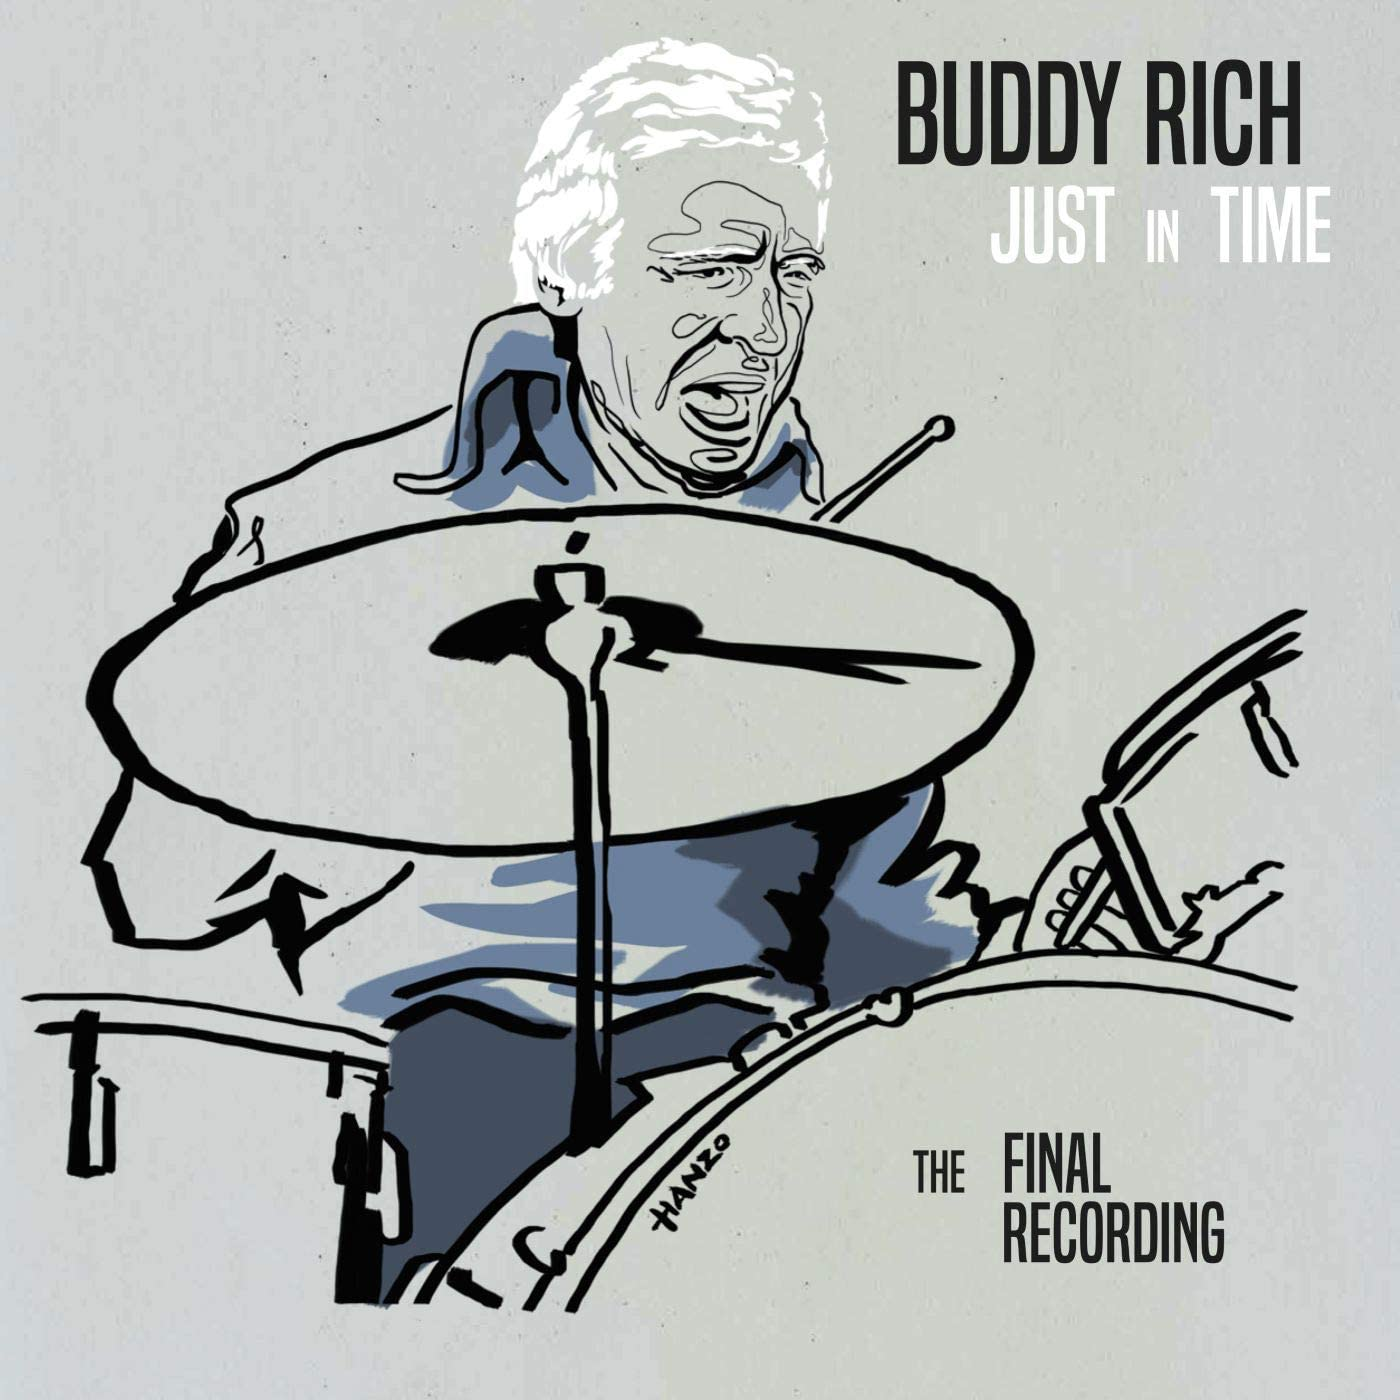 Rich, Buddy/Just In Time - The Final Recording [LP]